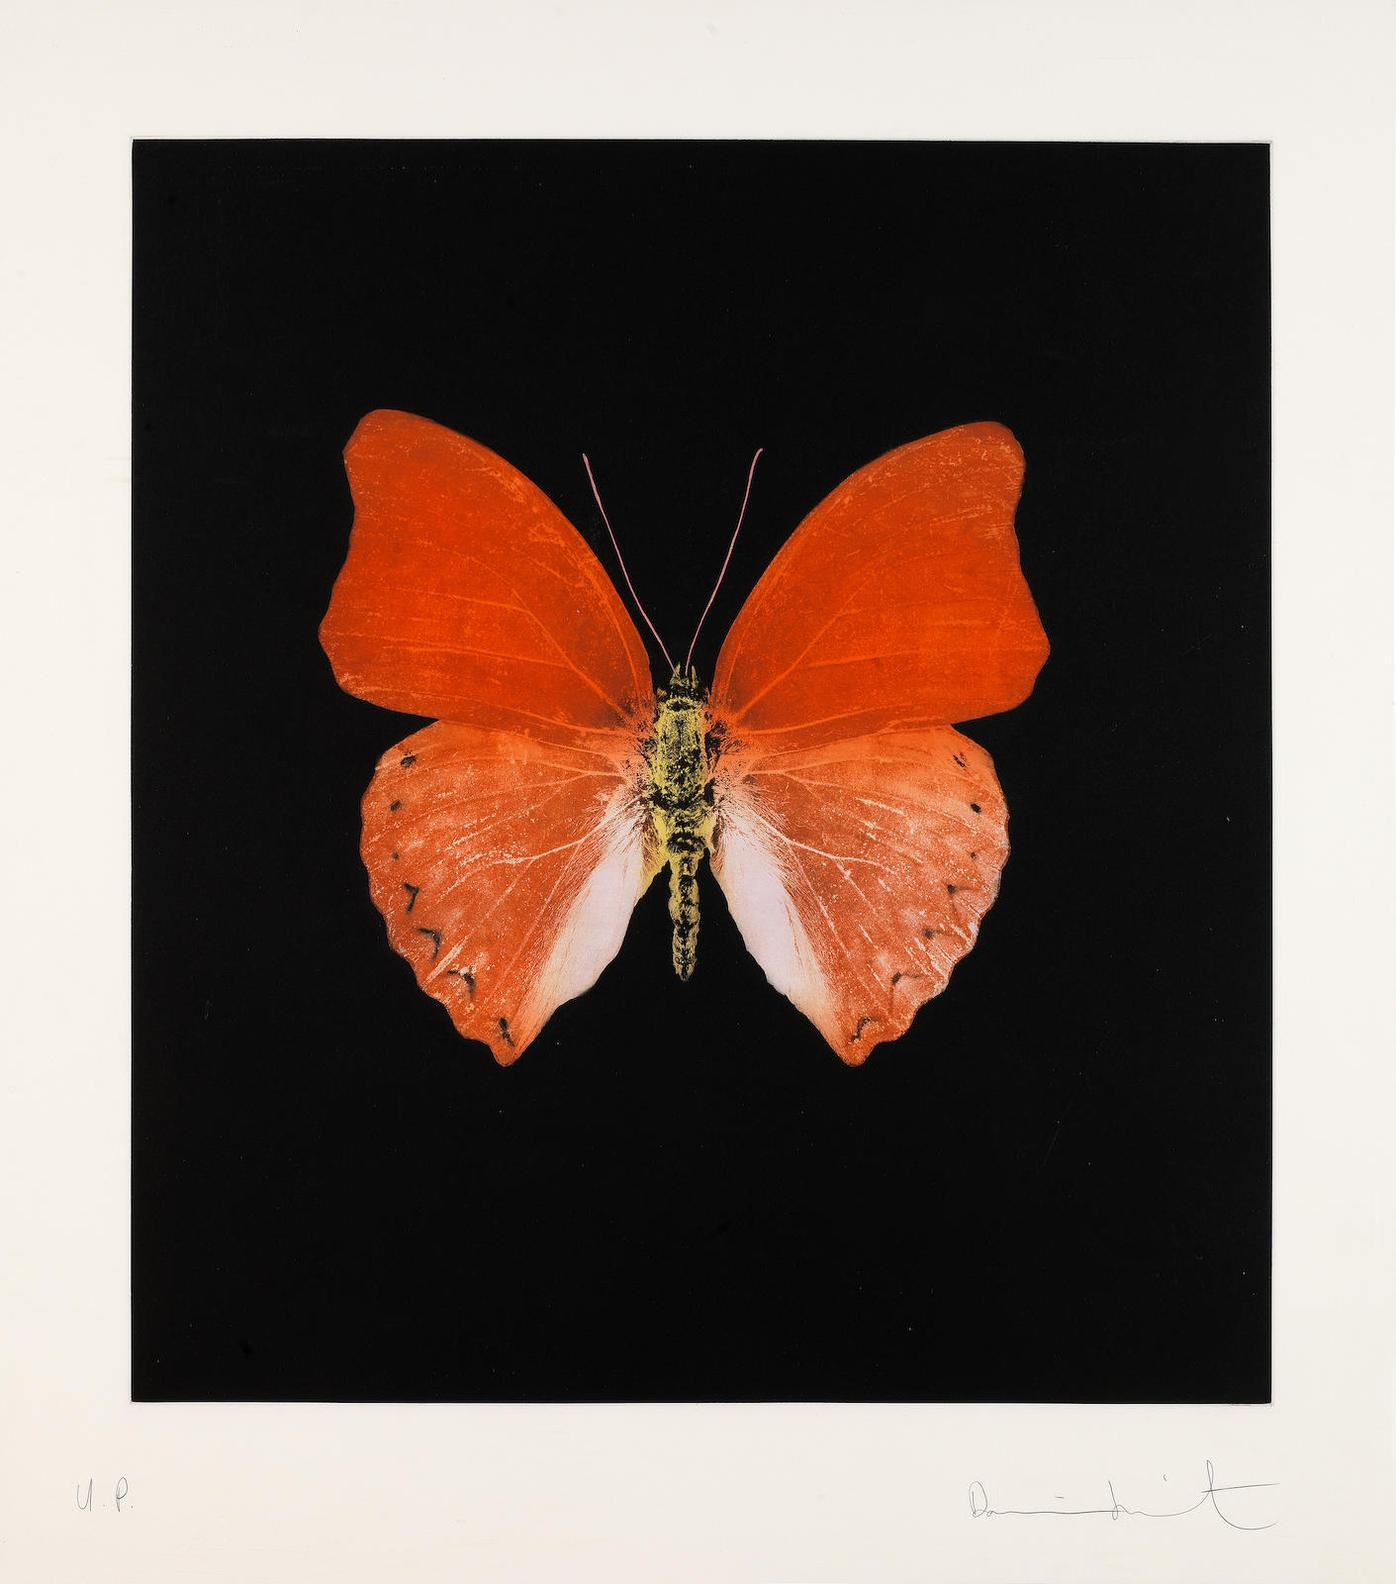 Damien Hirst-Orange Butterfly-2008